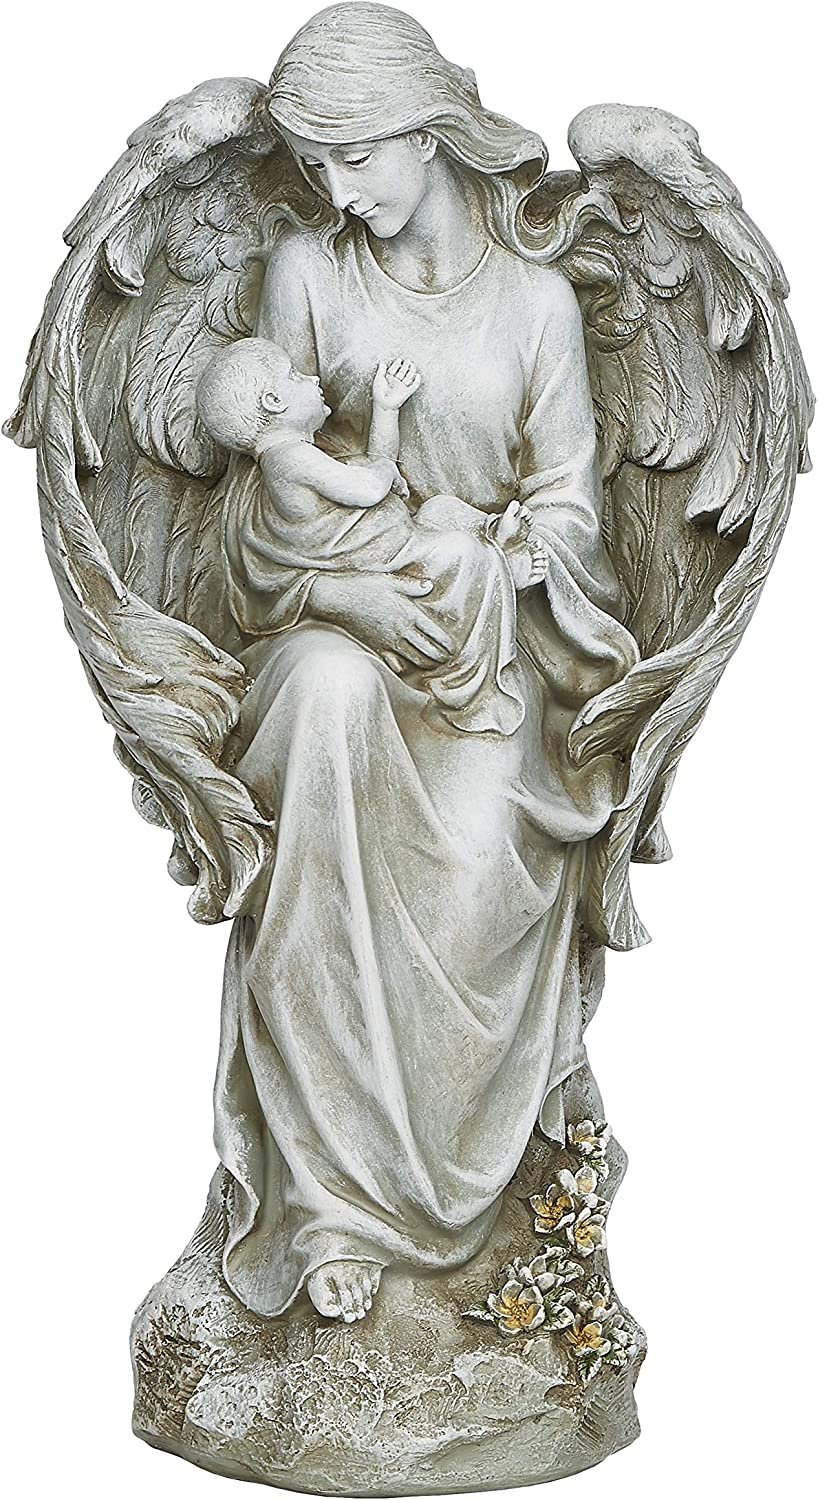 "Joseph's Studio by Roman - Angel with Baby Statue, 16.5"" H, Garden Collection, Resin and Stone, Decorative, Religious Gift, Home Outdoor and Indoor Decor, Durable, Long Lasting"